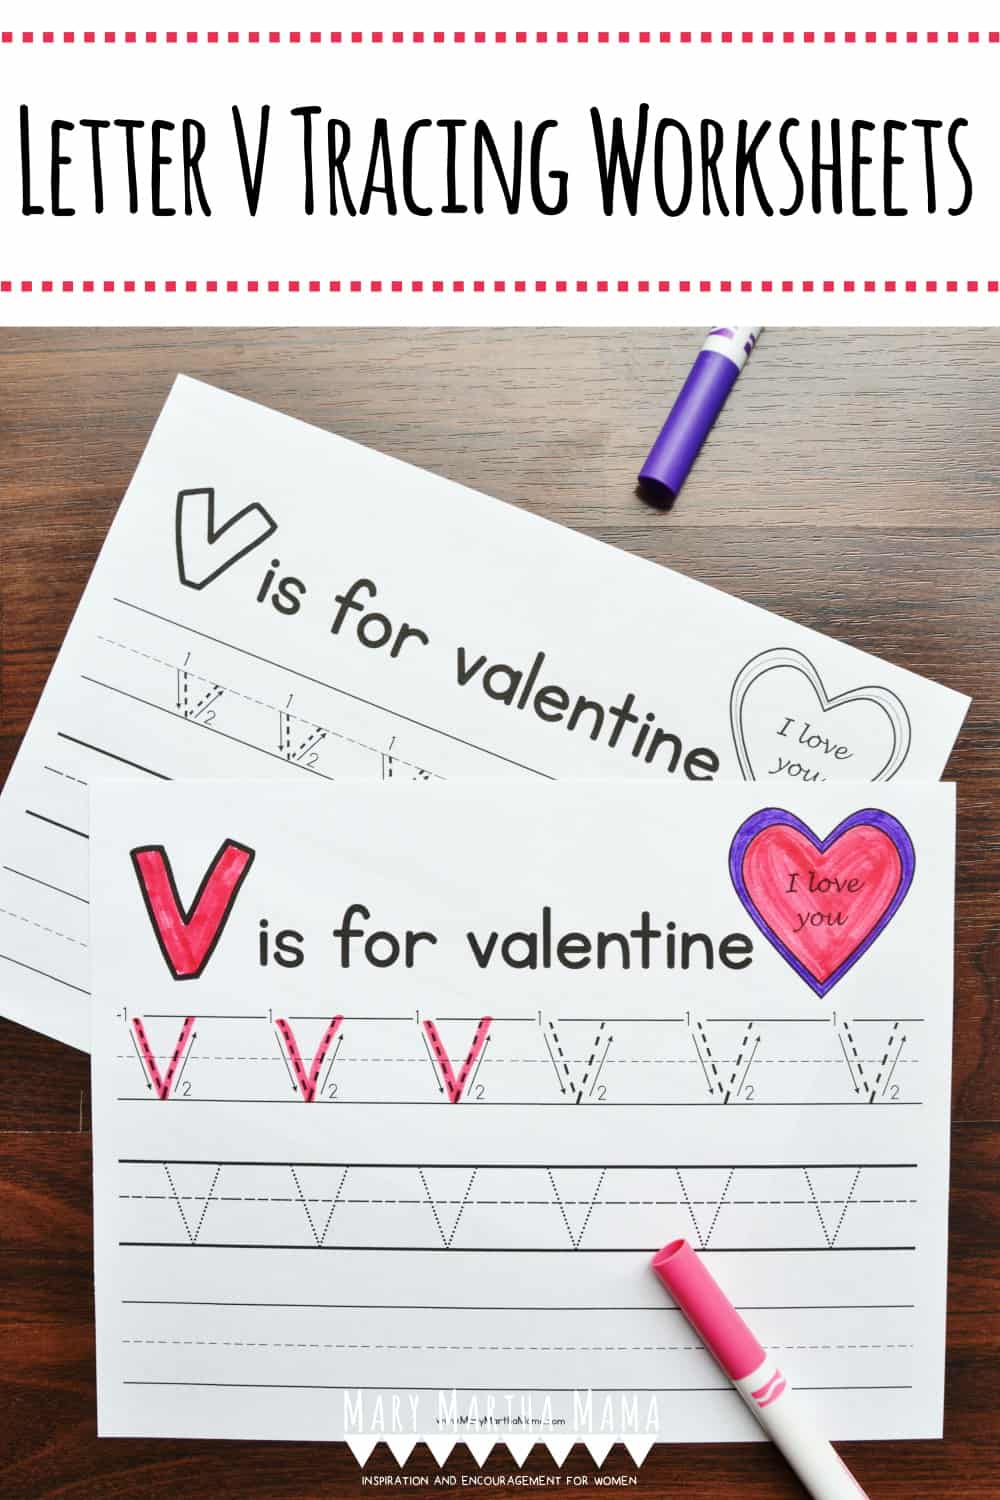 Use these free printable Letter V Tracing Worksheets to help your kiddo to learn proper letter formation for lower case and upper case letter V.